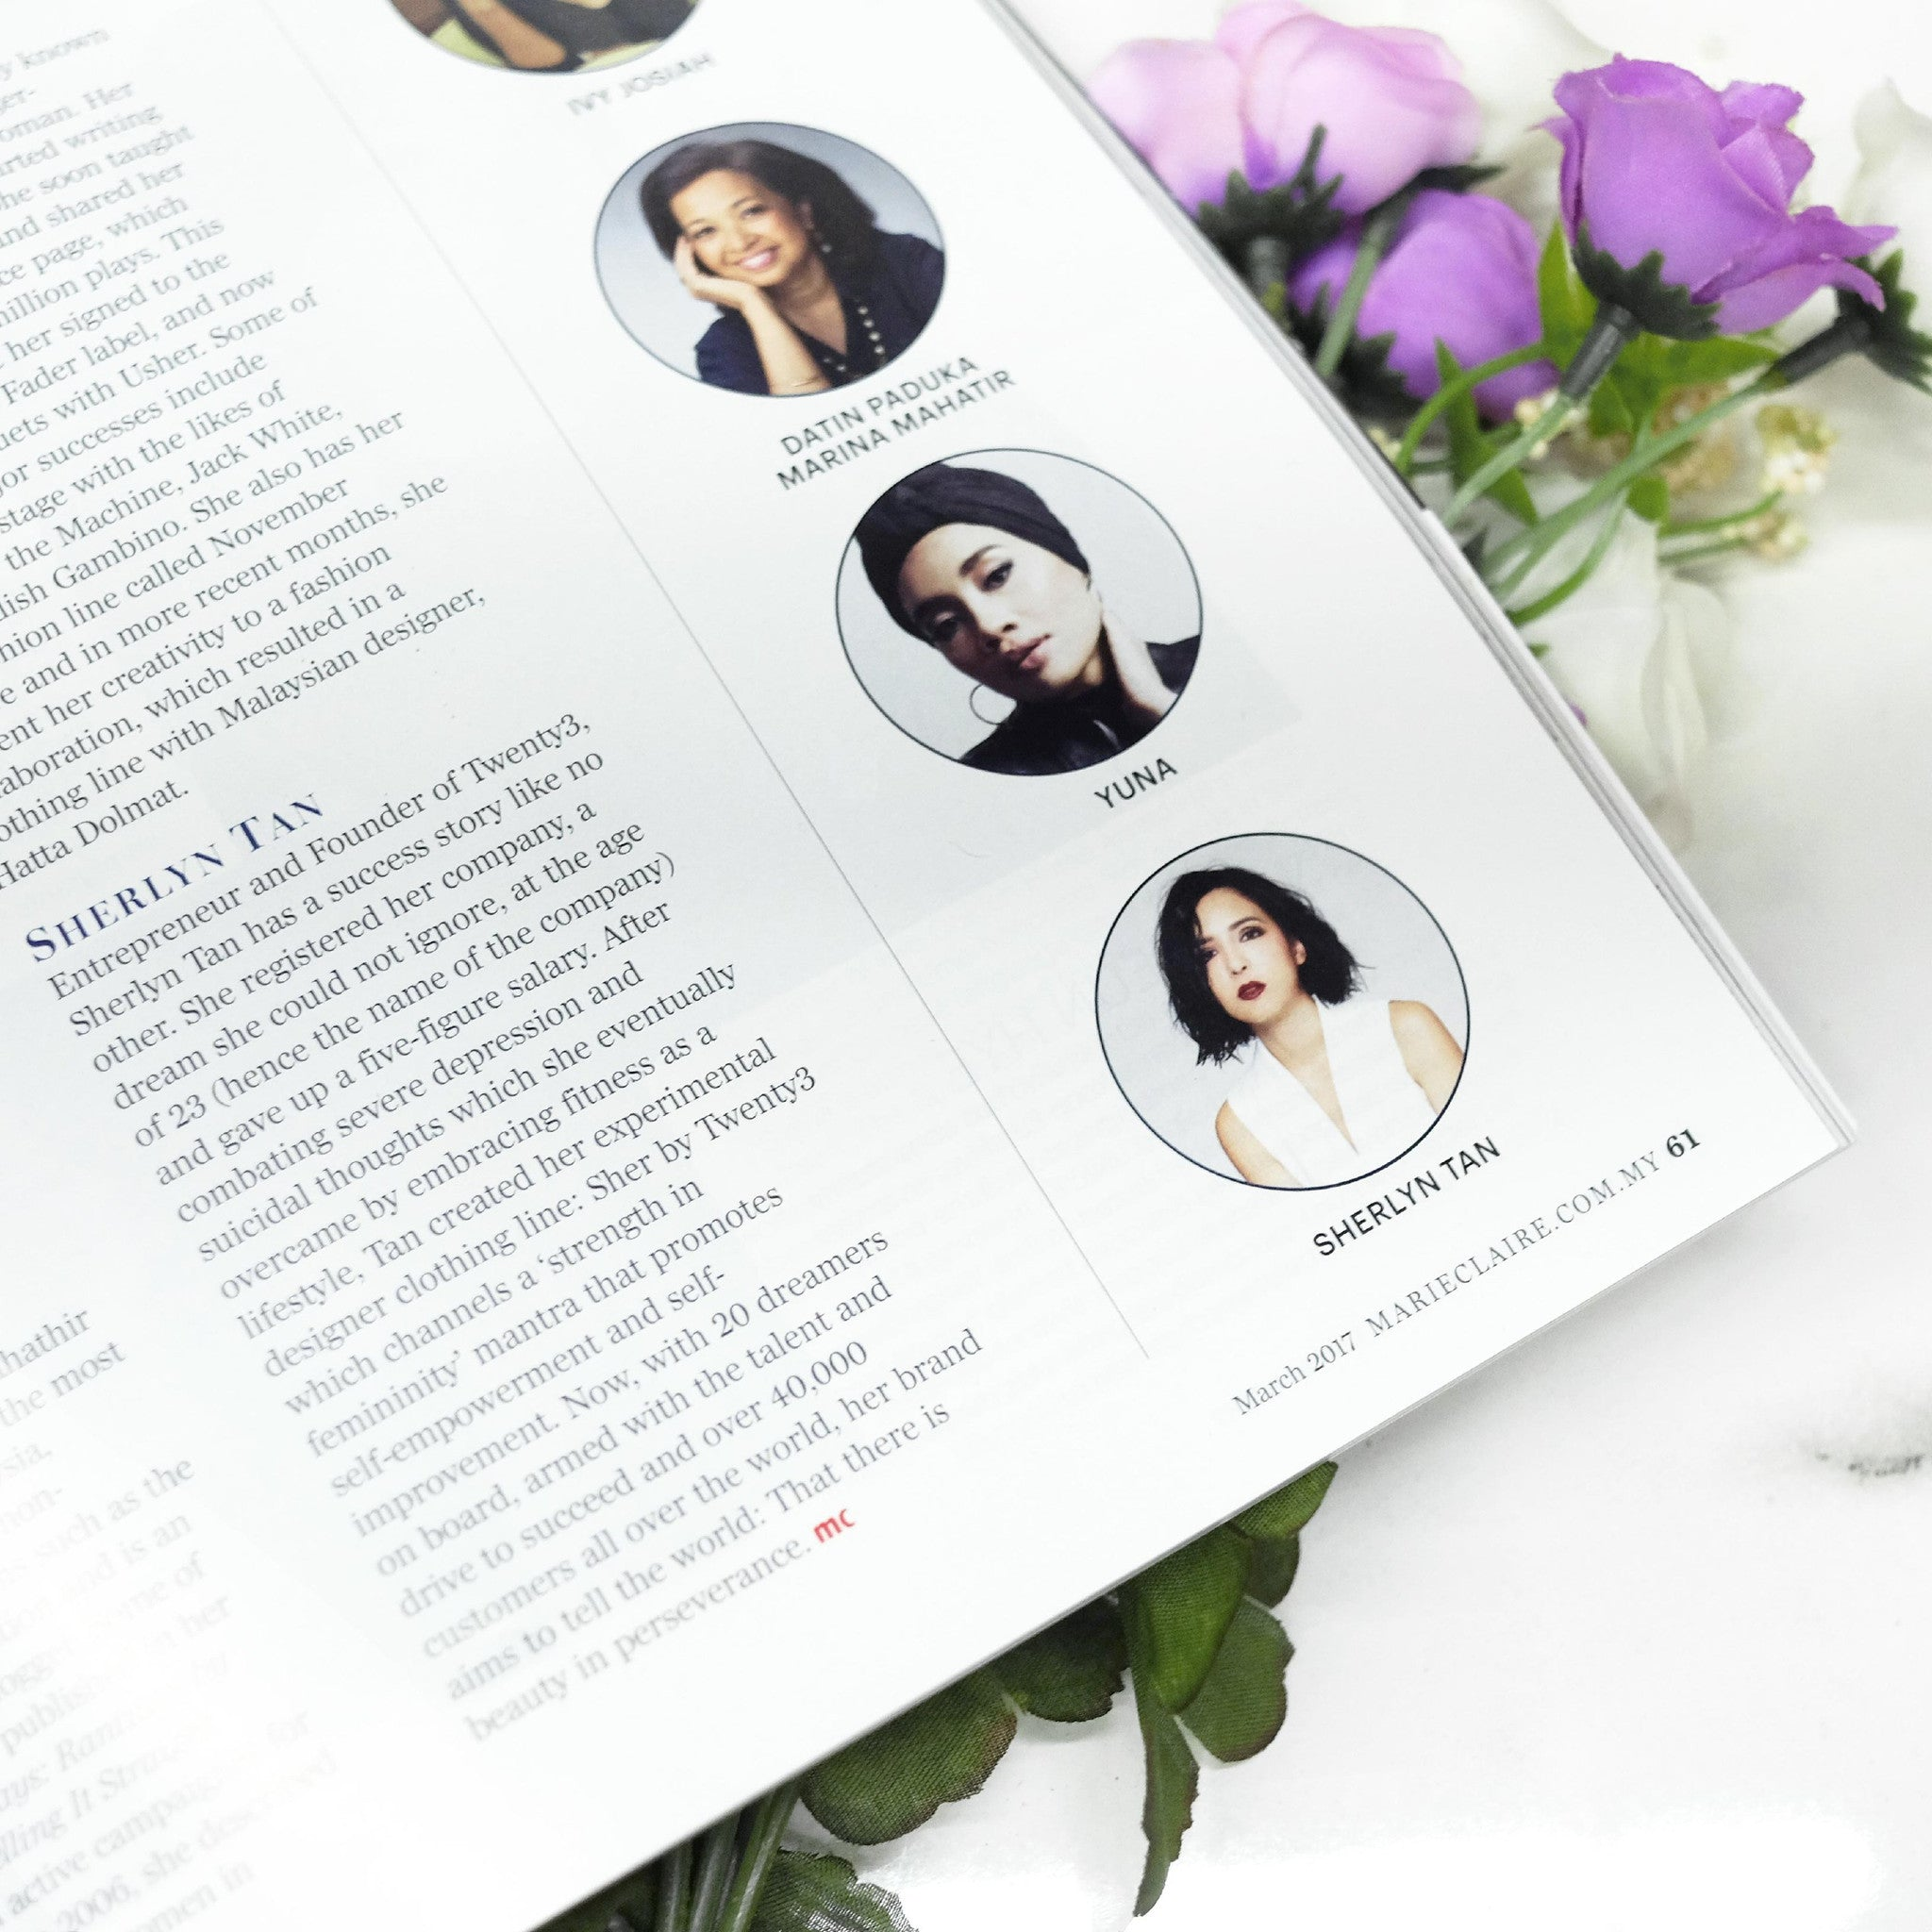 Sherlyn Tan in Marie Claire Magazine